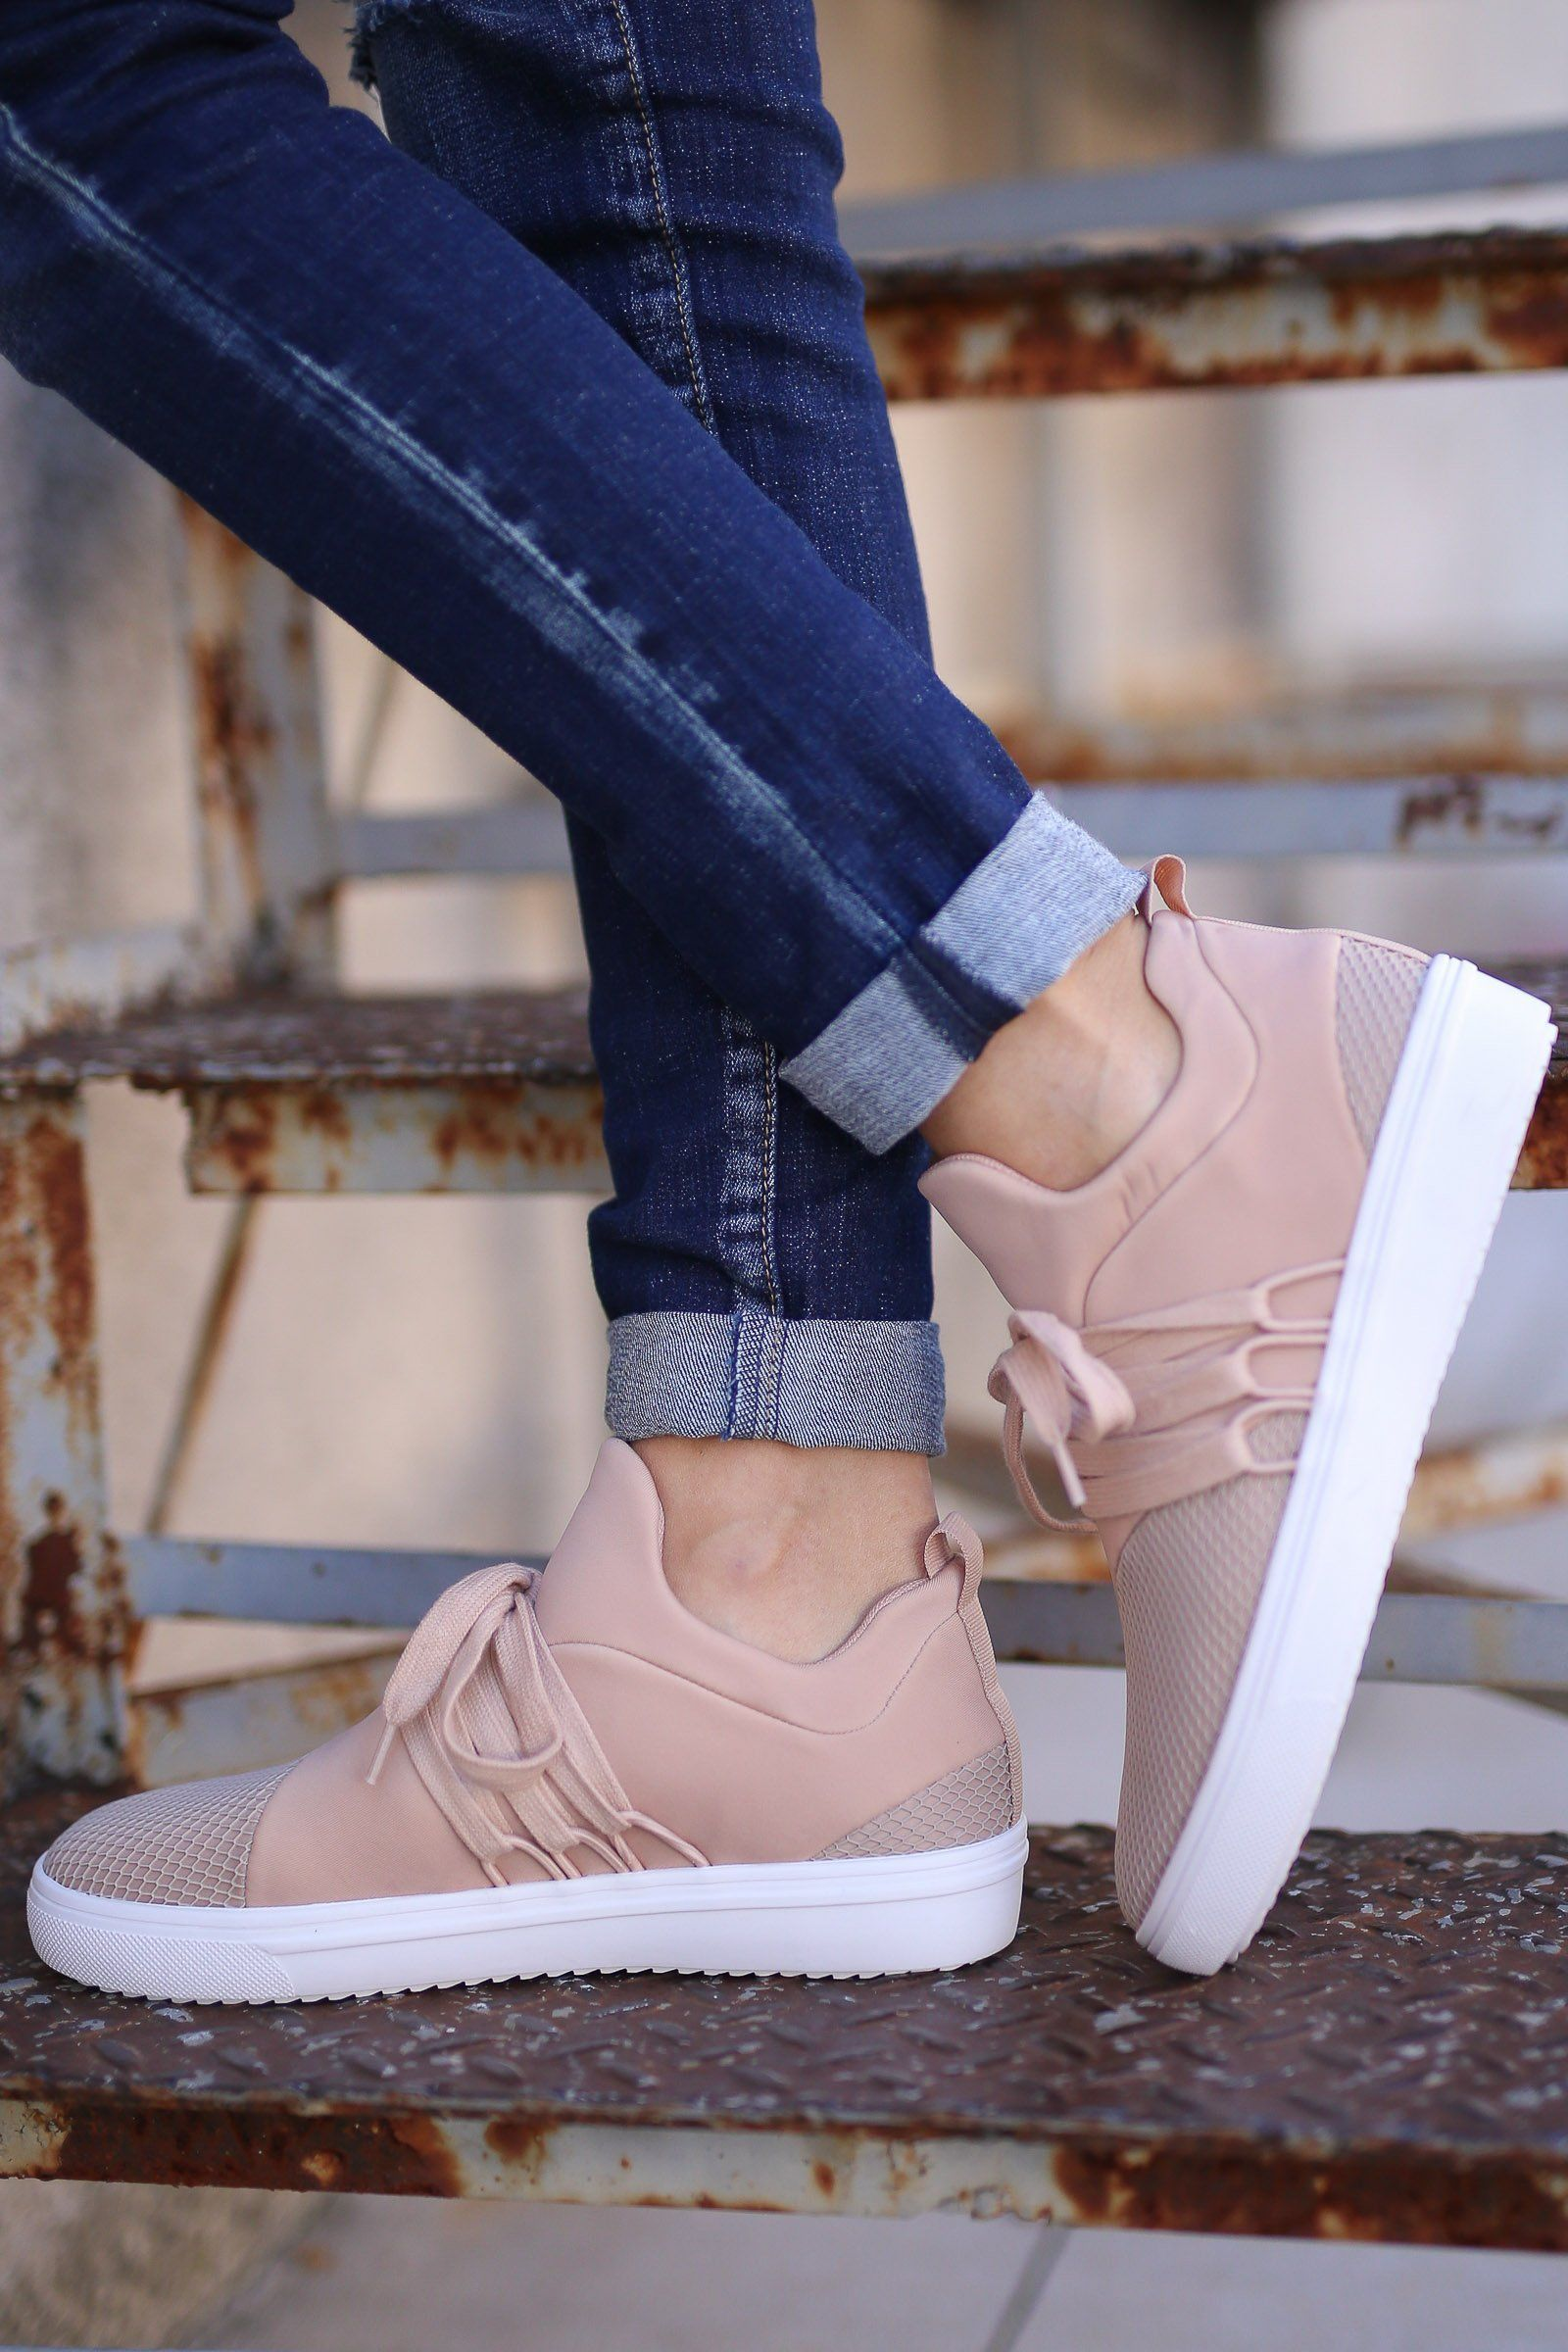 3335bb6947f STEVE MADDEN Lancer Sneakers - Blush  Sneakers